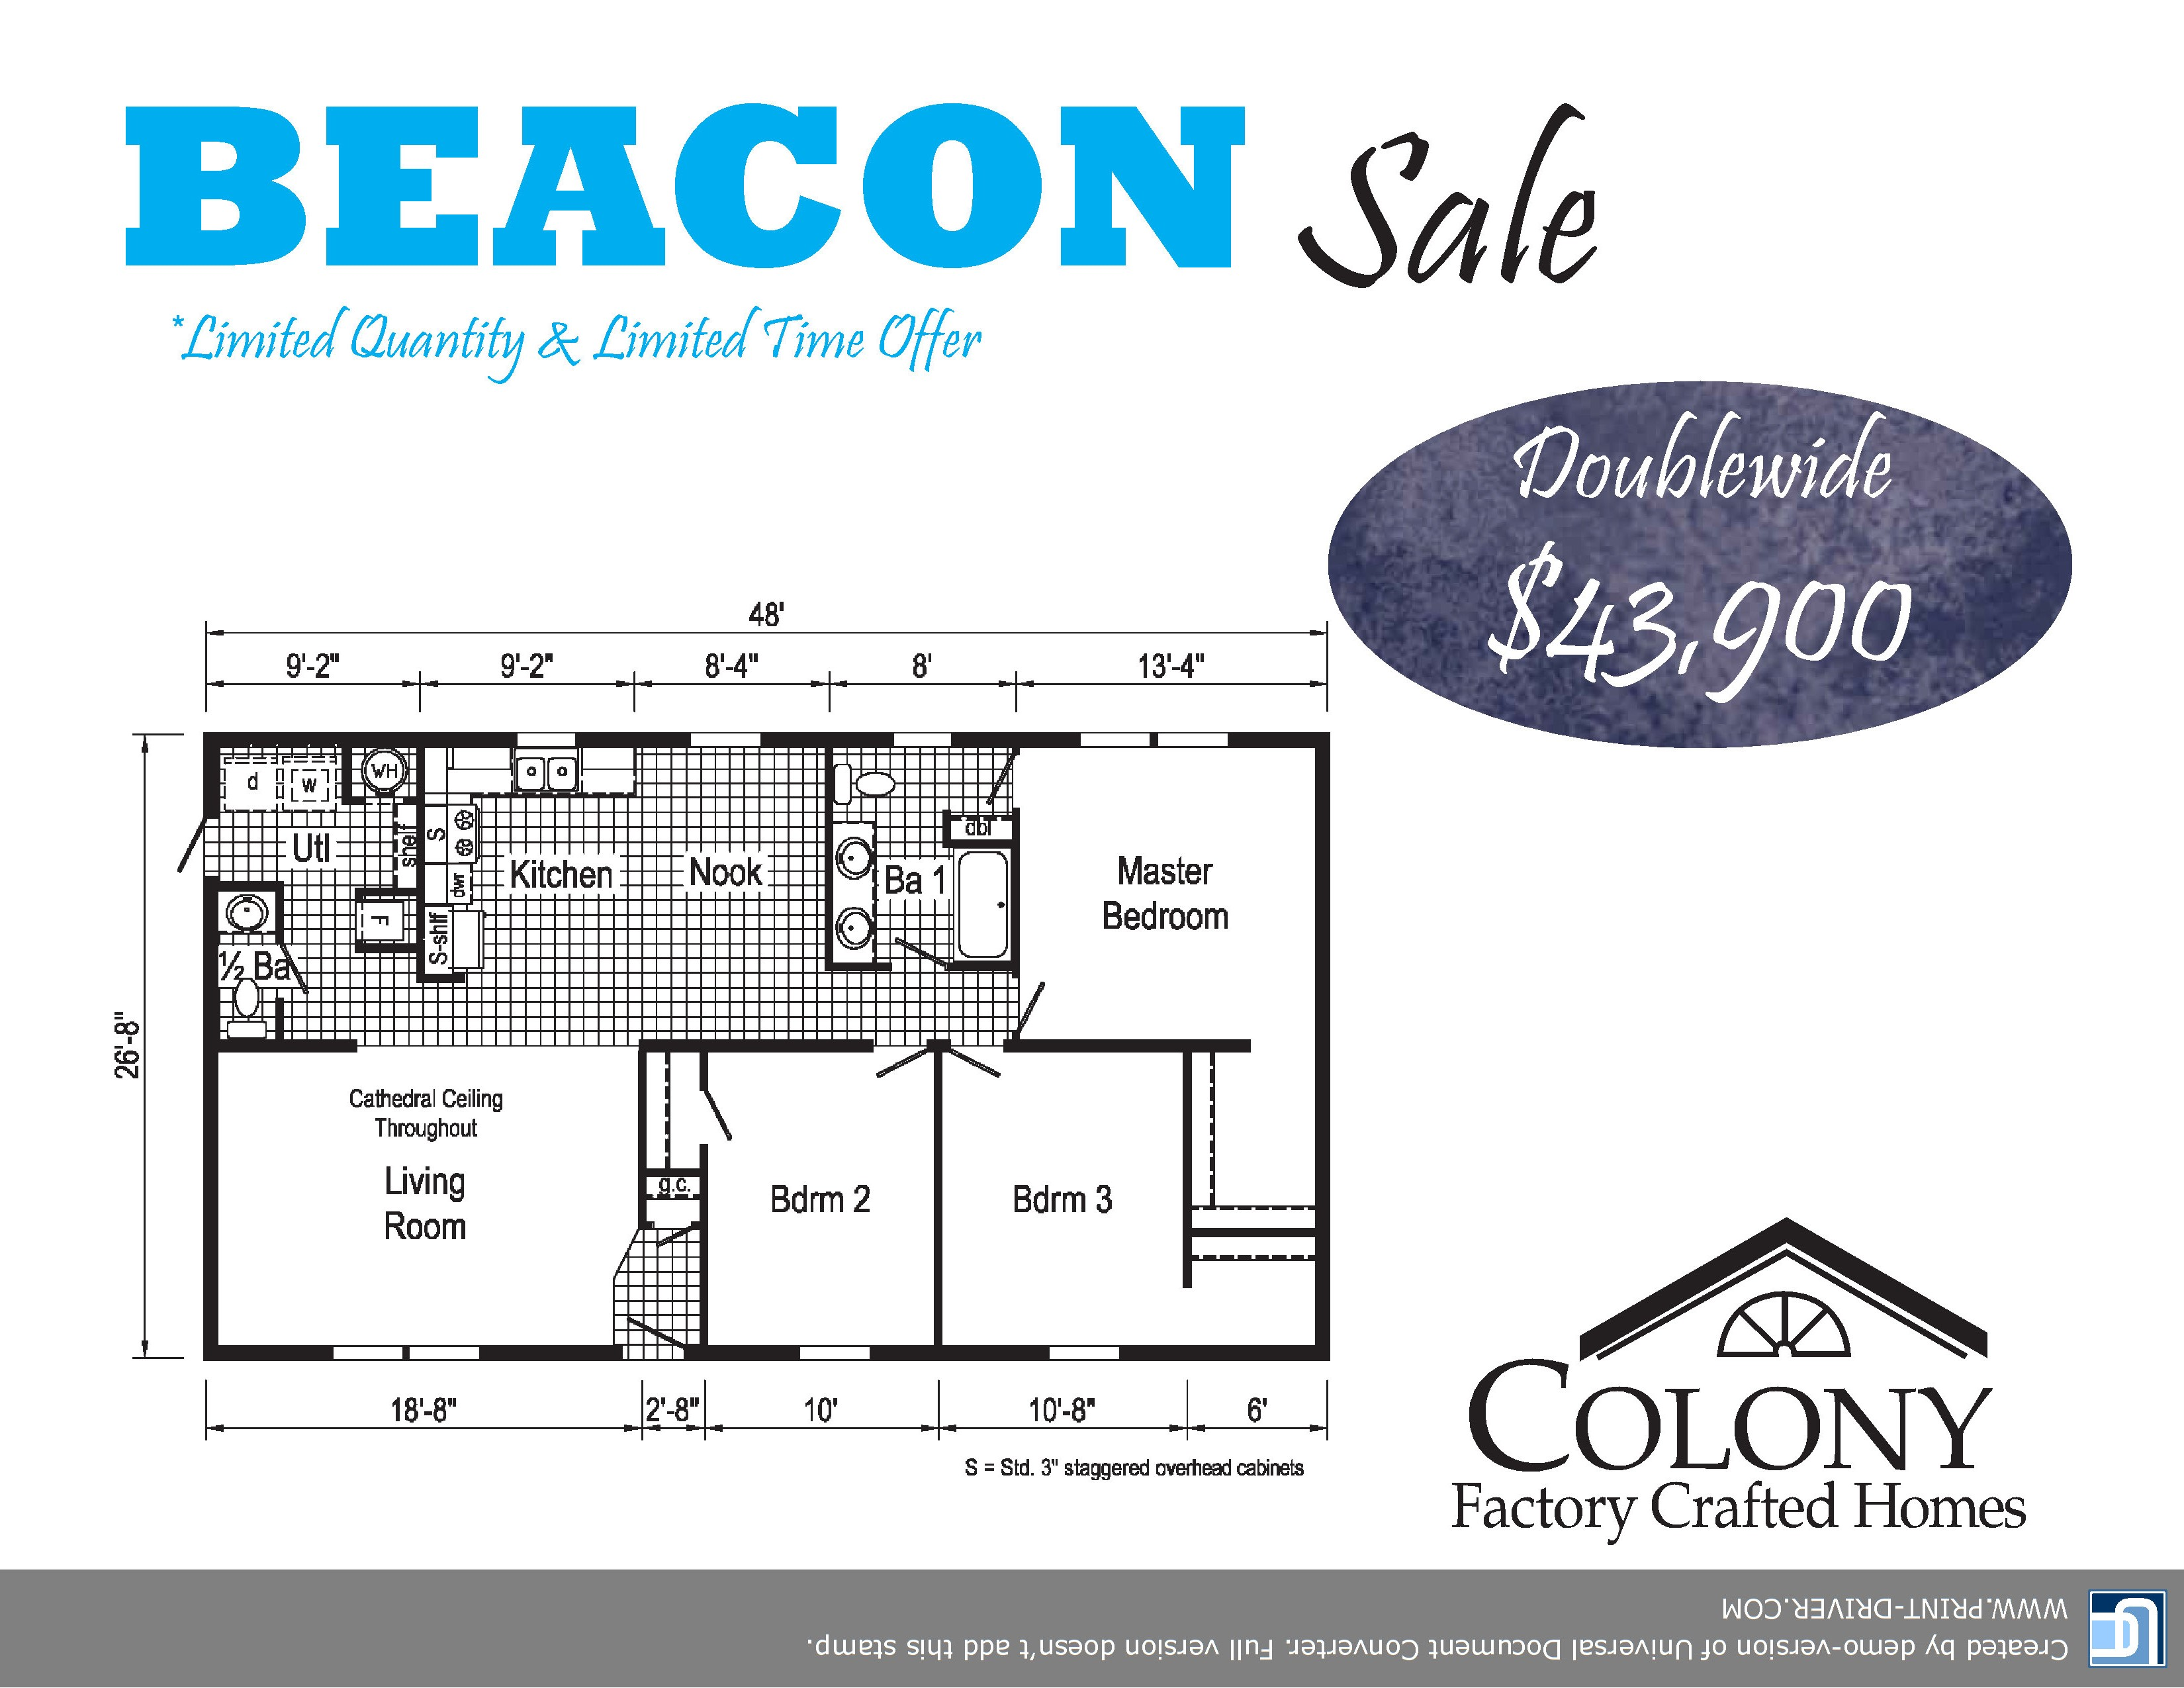 BUSTER BEACON SECTIONAL HOME